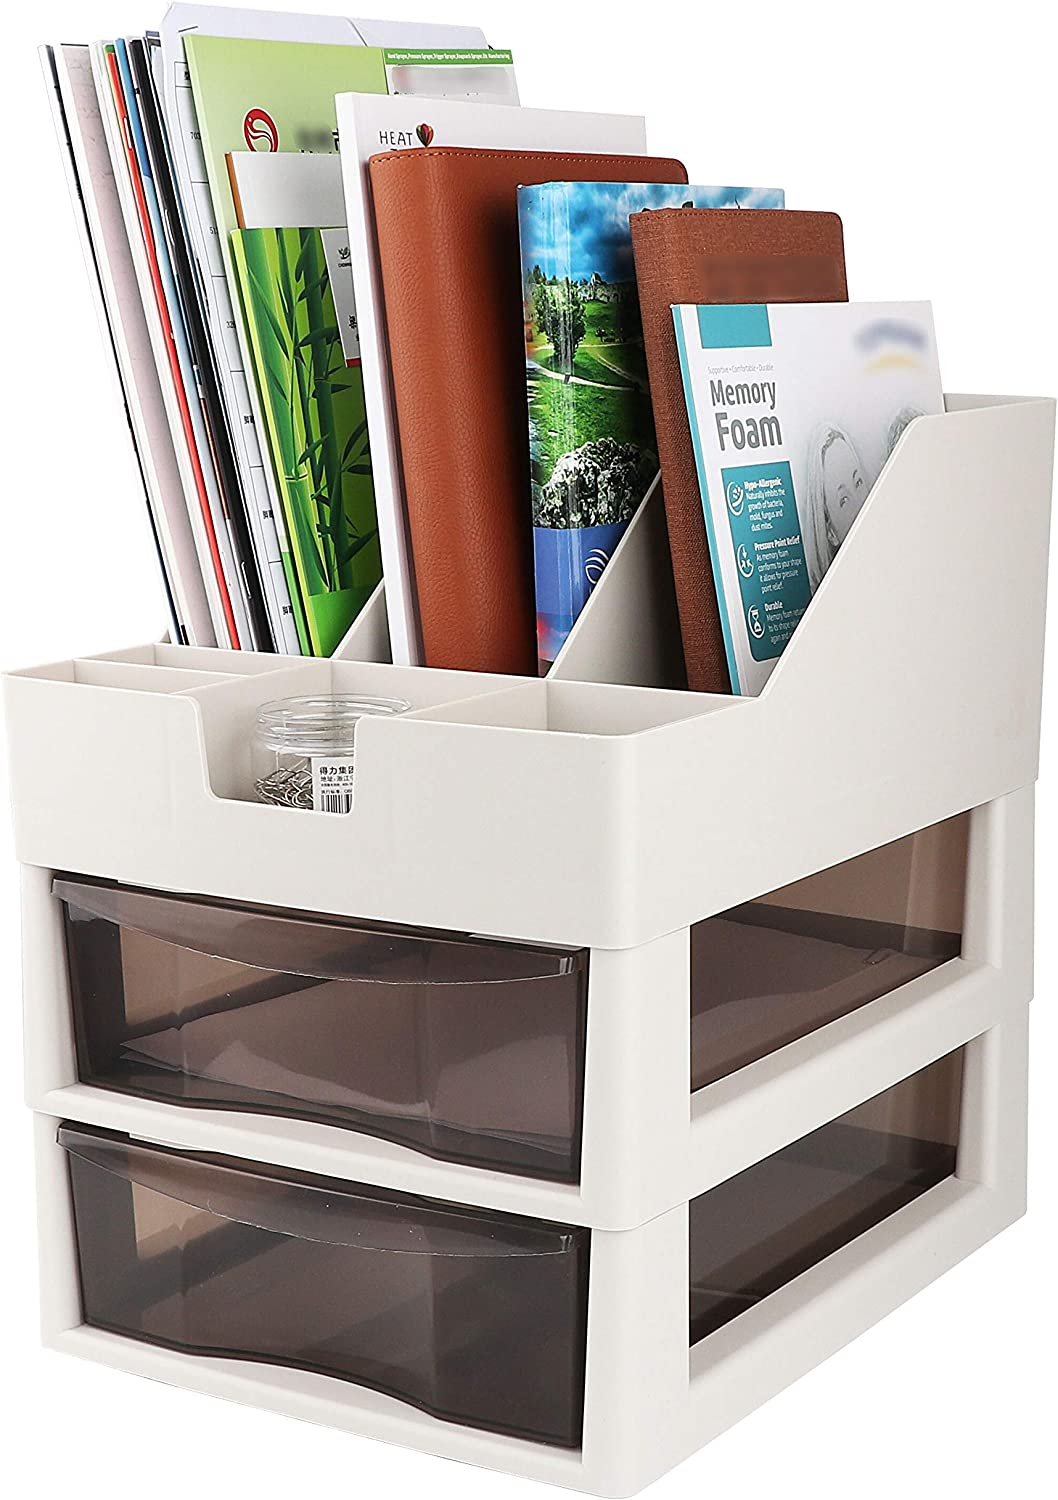 Desk and File Organizer with Two Light Holder Pen Discount is also Many popular brands underway Drawers G